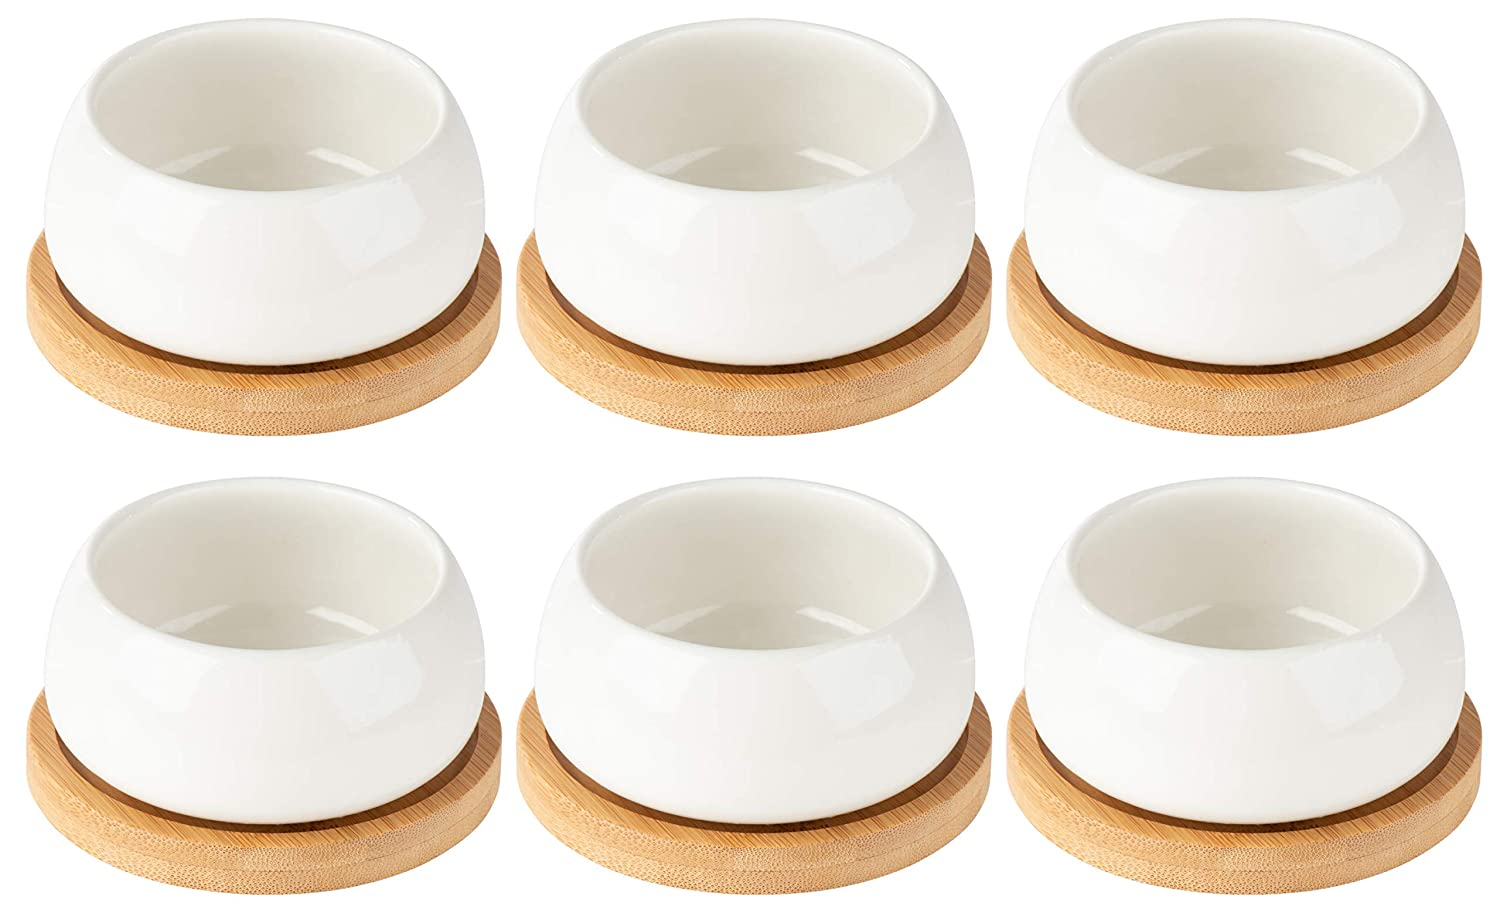 Porcelain Succulent Pots – 6-Pack Round Planters with Bamboo Bases for Small Plants, Garden Decor, White, 3 x 1.6 Inches